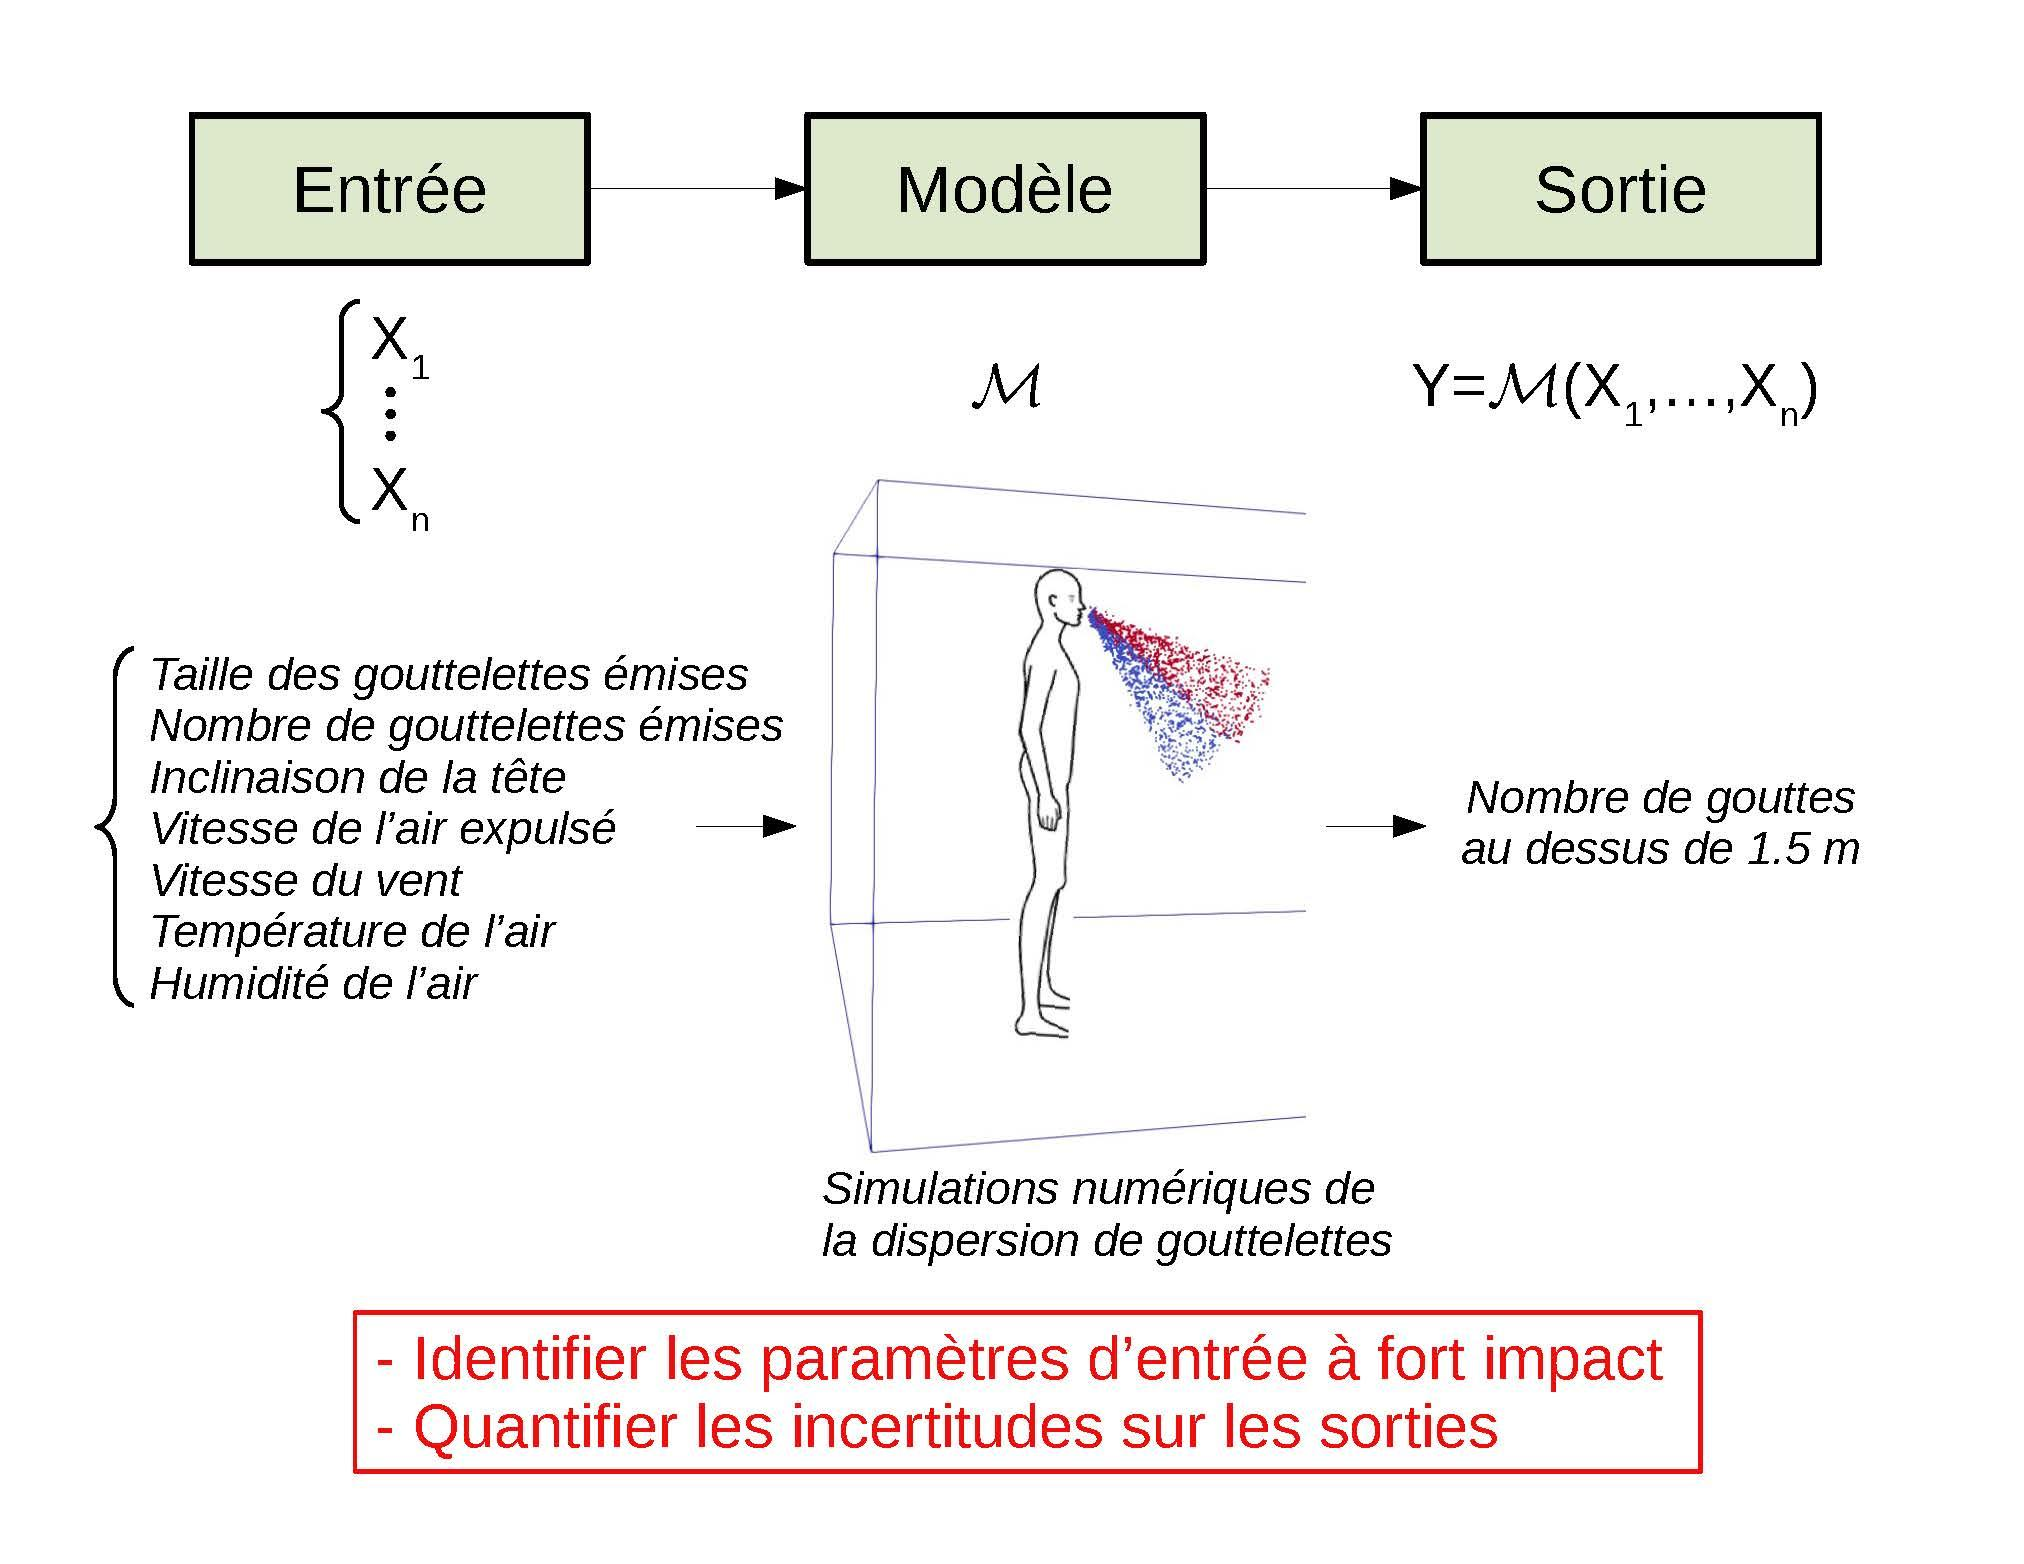 Modèle de simulation de dispersion de gouttelettes